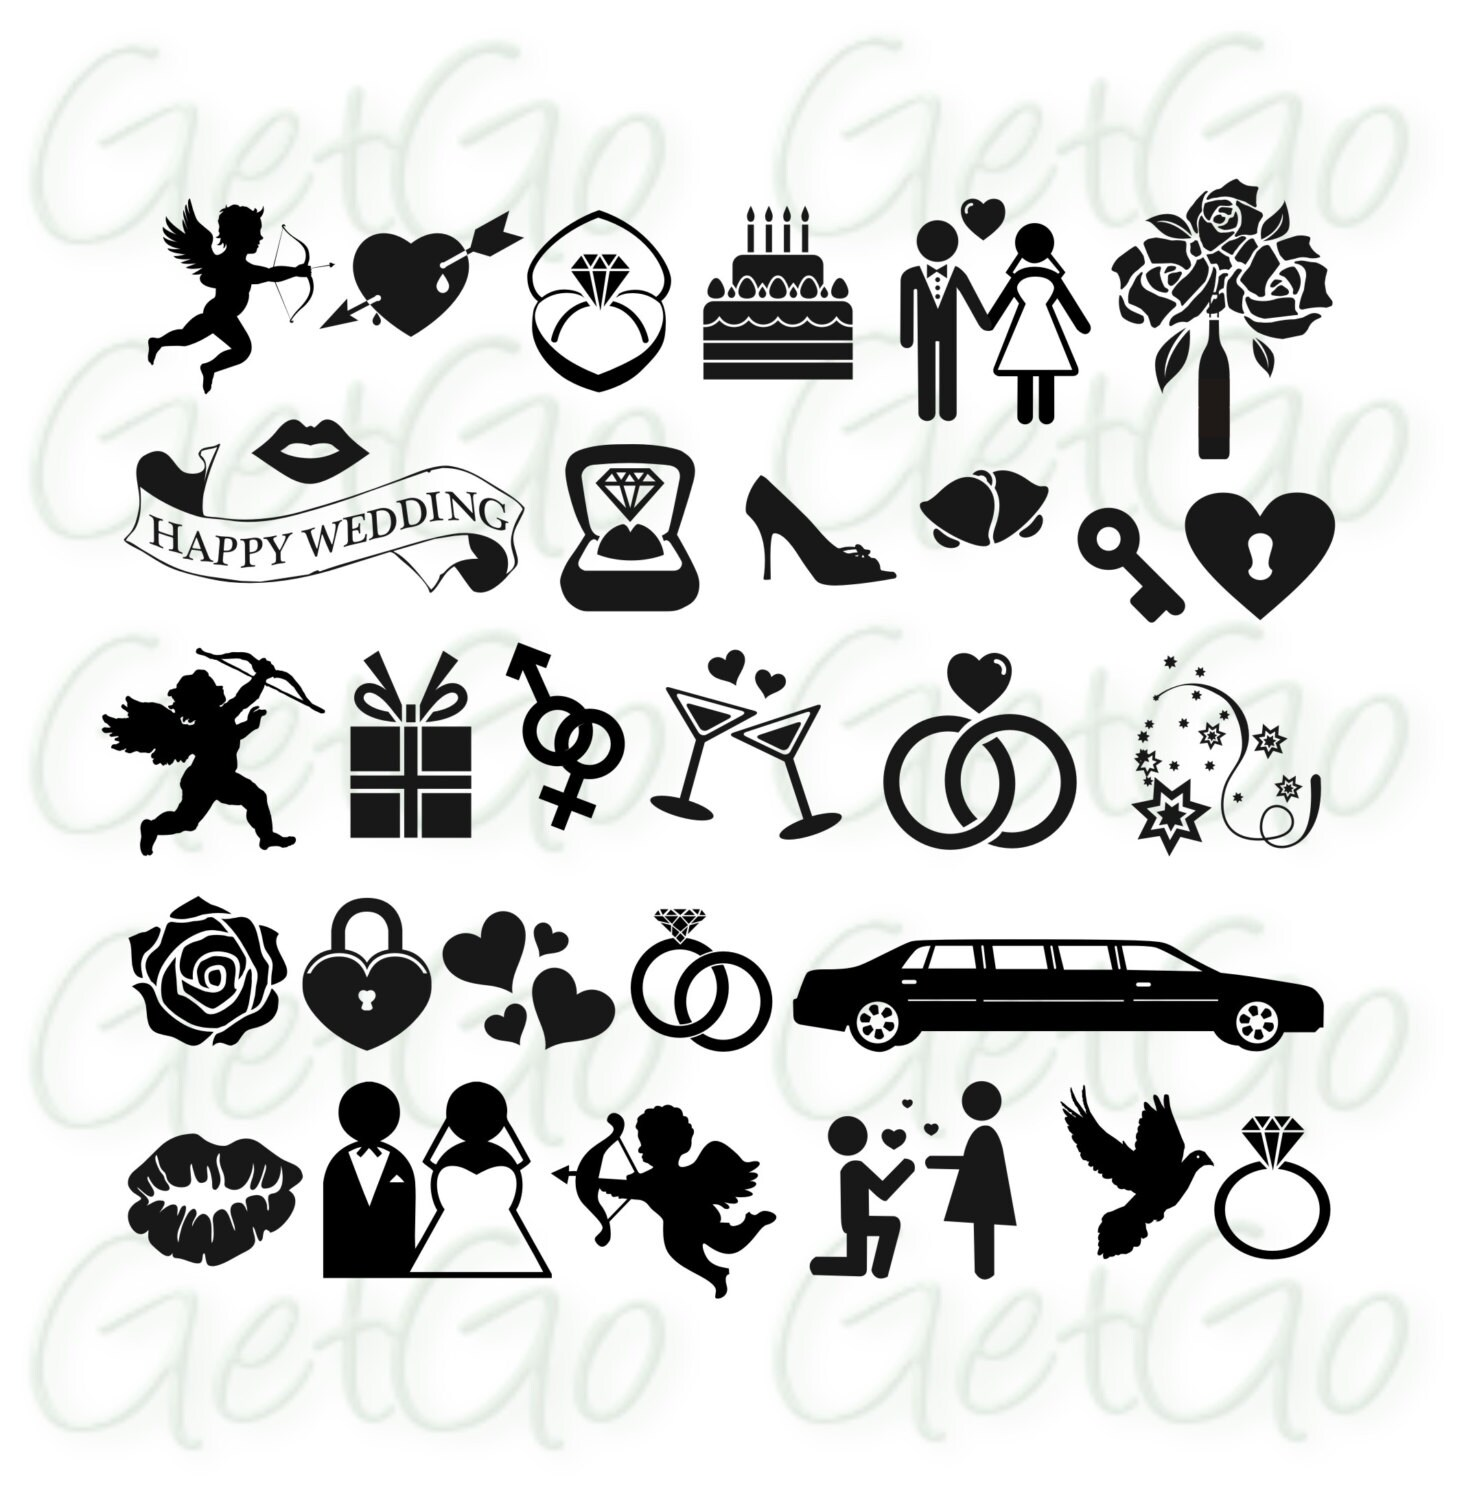 Wedding Gift Clipart Free : Wedding Icons Clipart Vectors Invitation Clip Art Cards